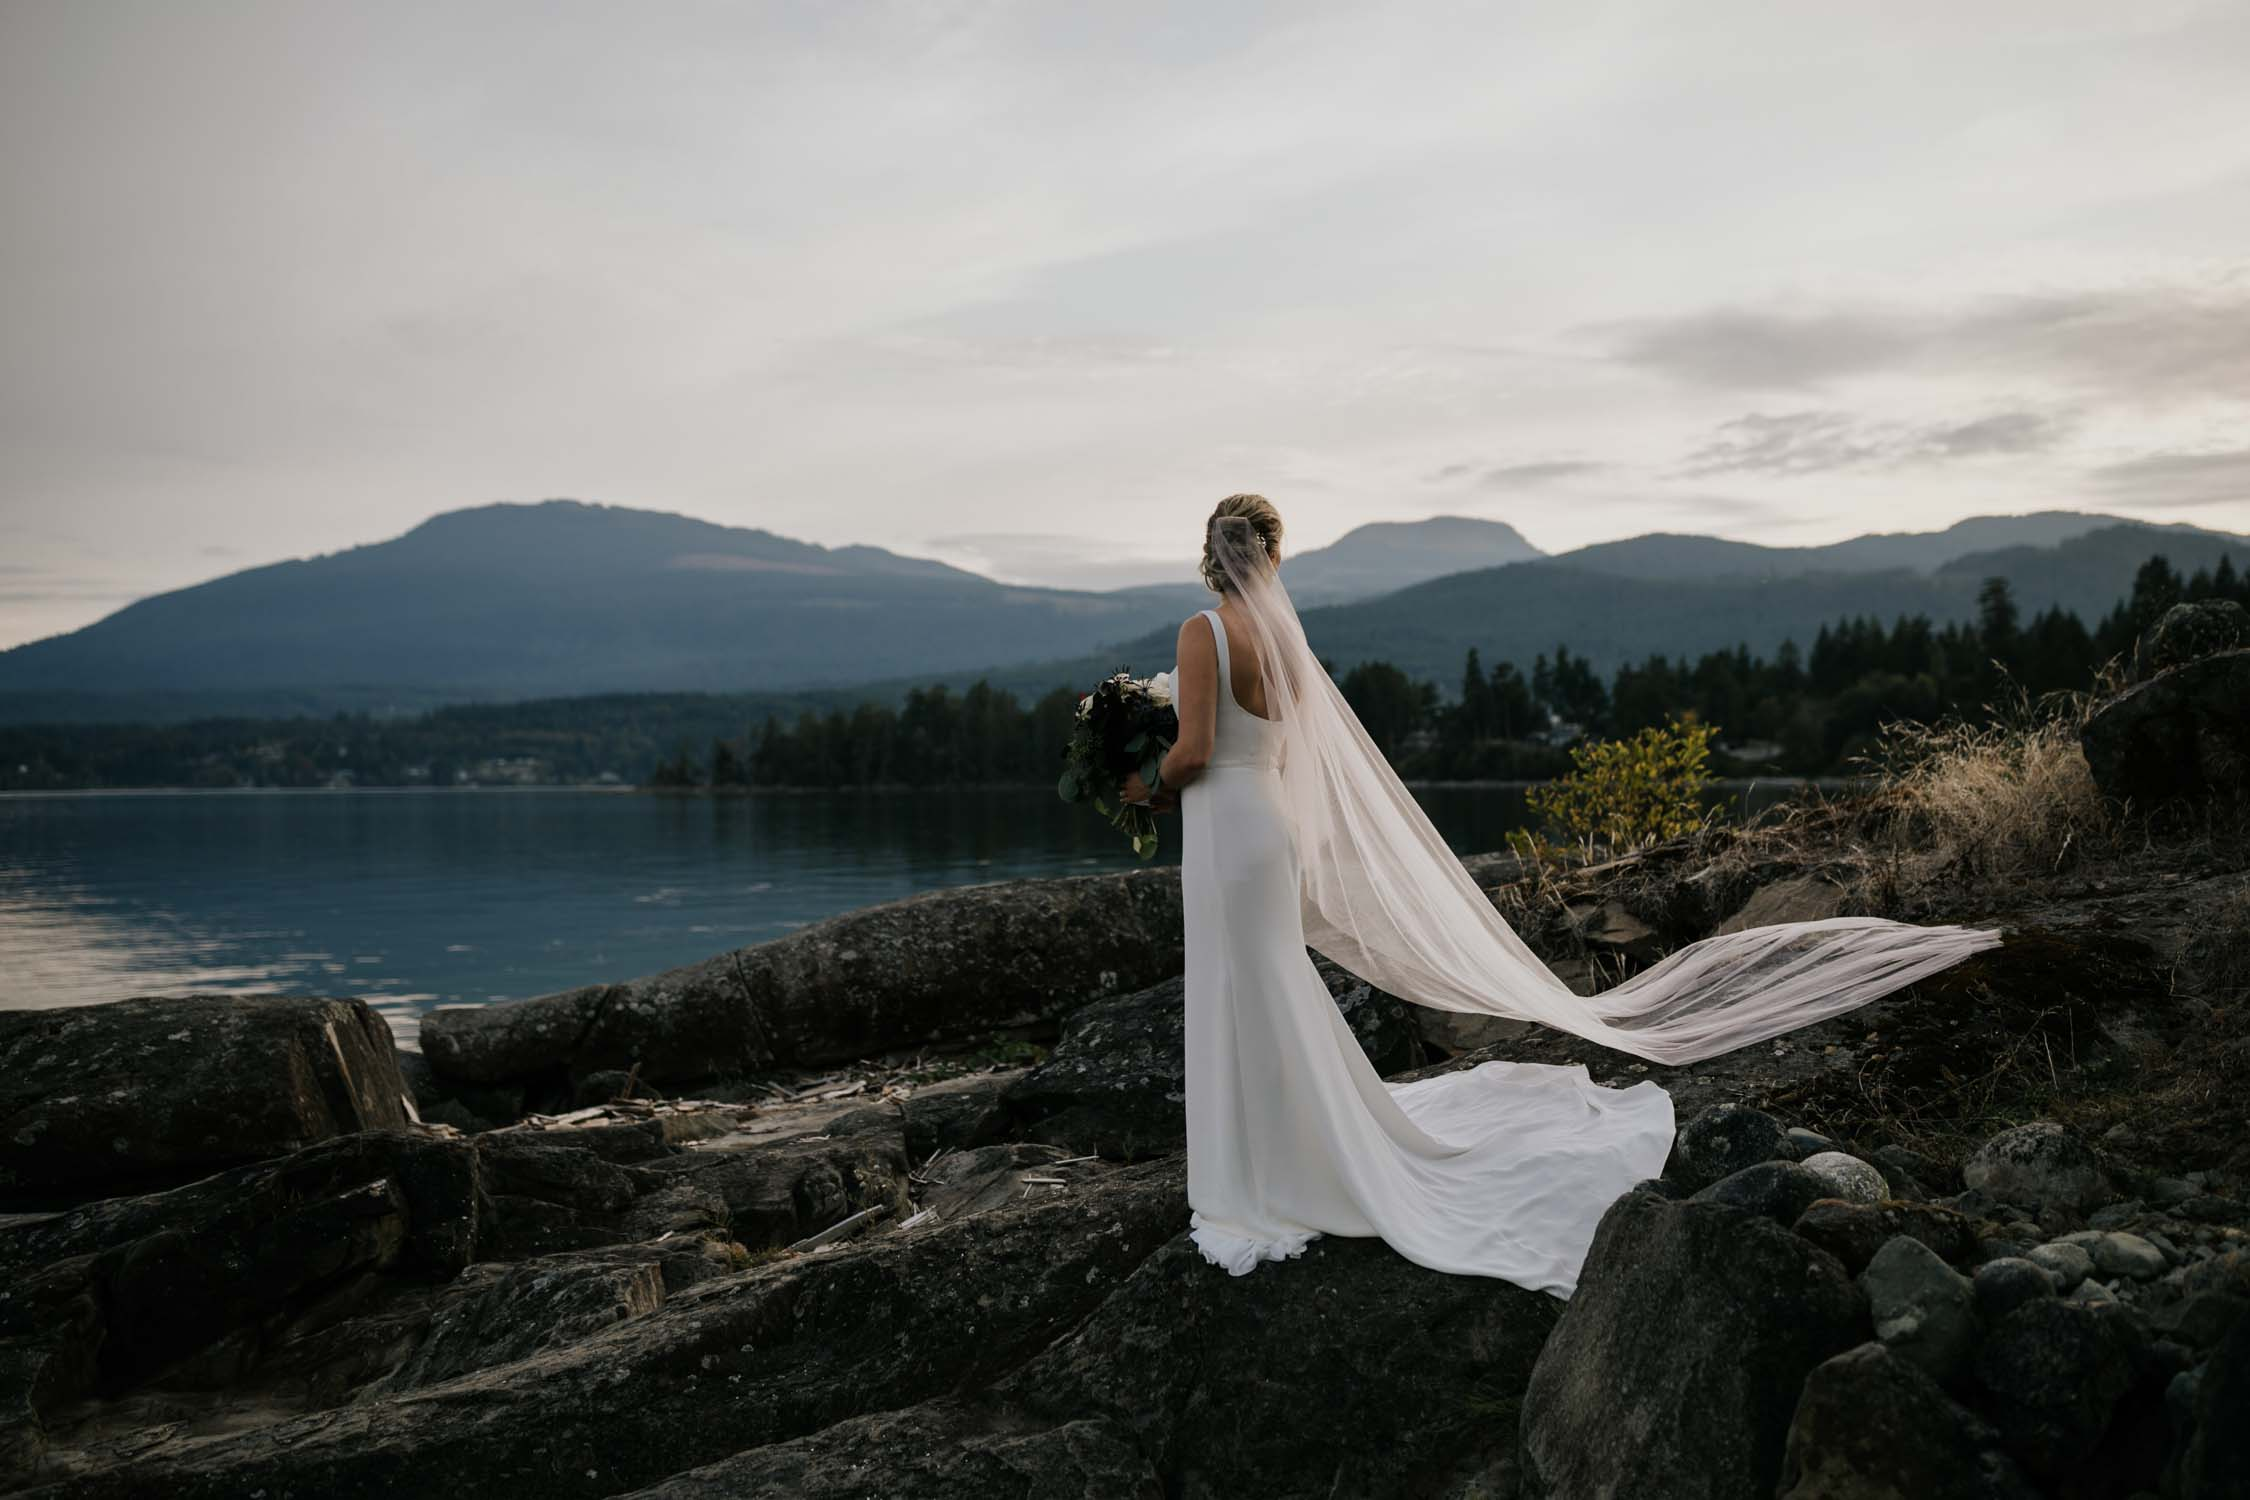 Alternative Vancouver Island Wedding Photographer captures intimate beach wedding on Vancouver Island at beautiful venue and location with sea and mountain views